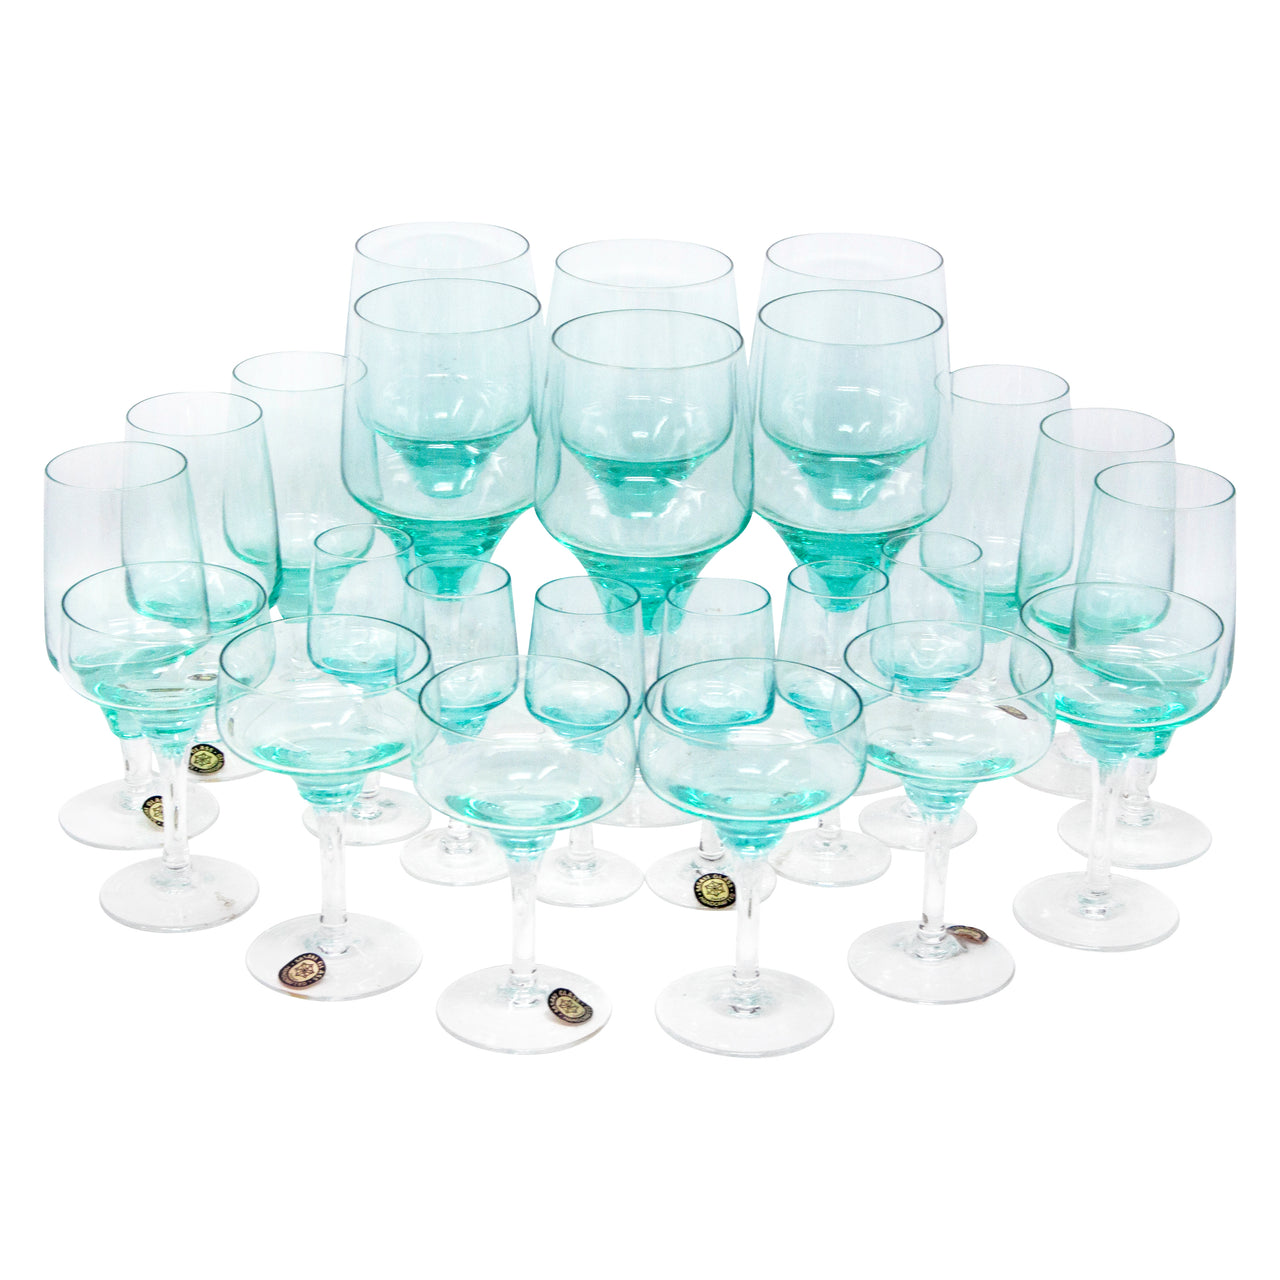 Vintage Sasaki Harmony Aqua Cocktail Stems Set | The Hour Shop